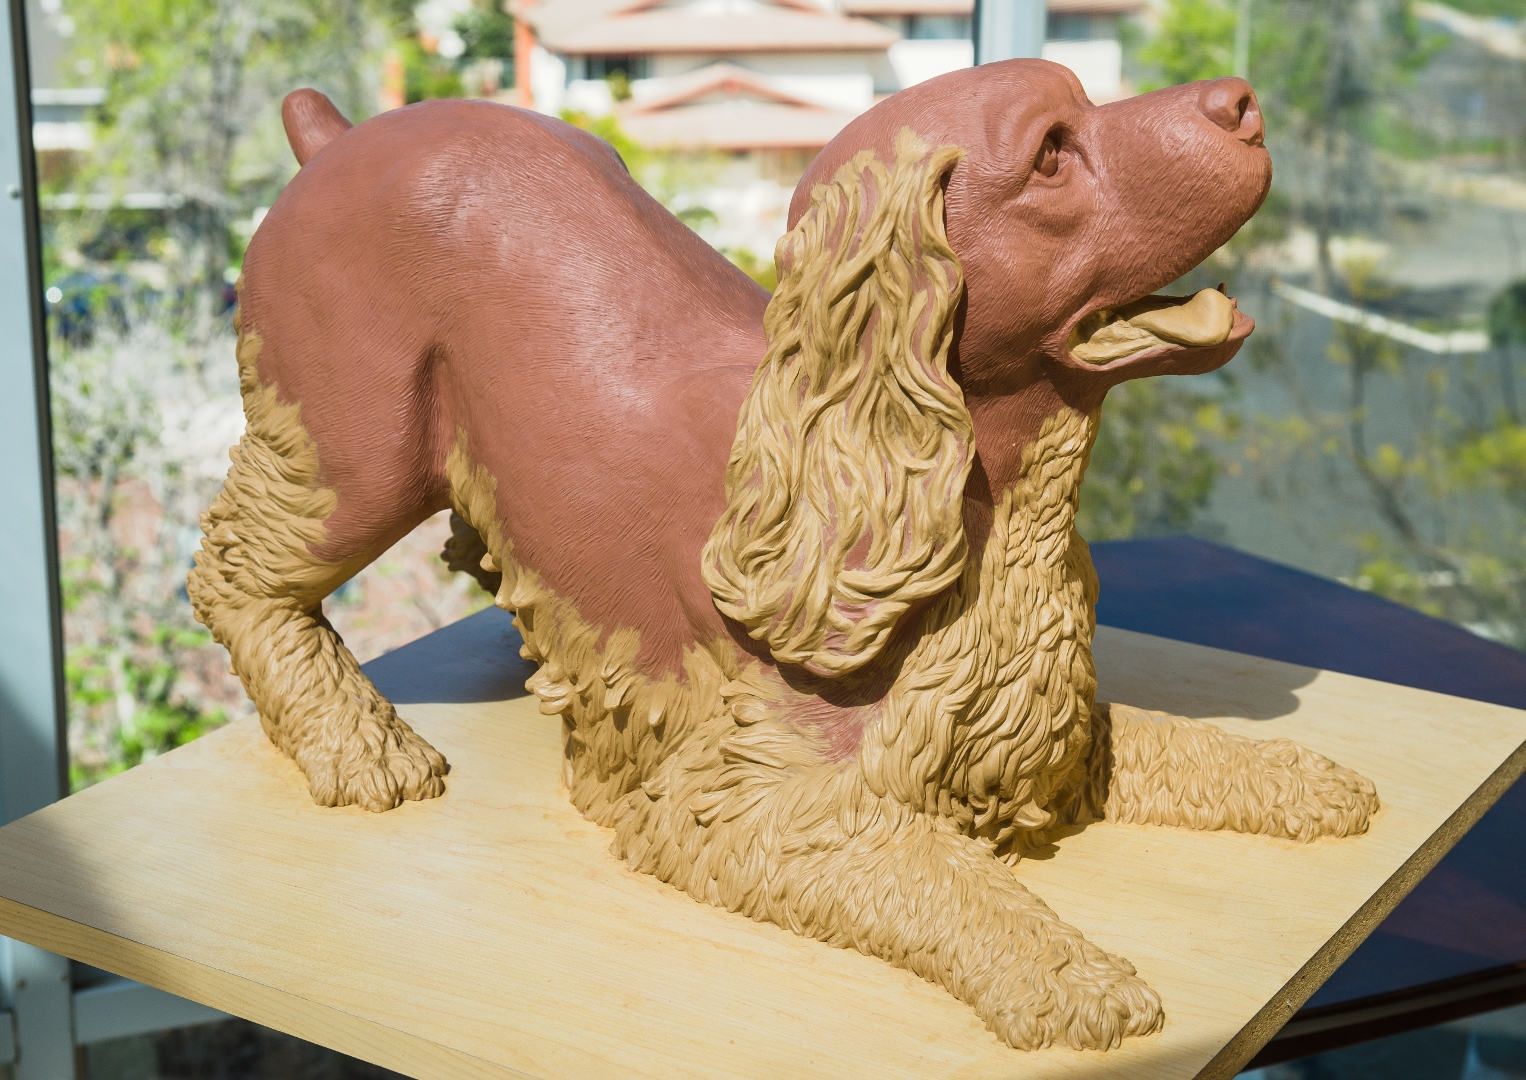 Play Bow.  A memorial to our cocker spaniel Sonny.  The final clay, ready for bronze.    This is a memorial to our cocker spaniel Sonny, in one of his favorite poses, ready to play.  He was a wonderful dog. By Terrence Robertson-Fall.